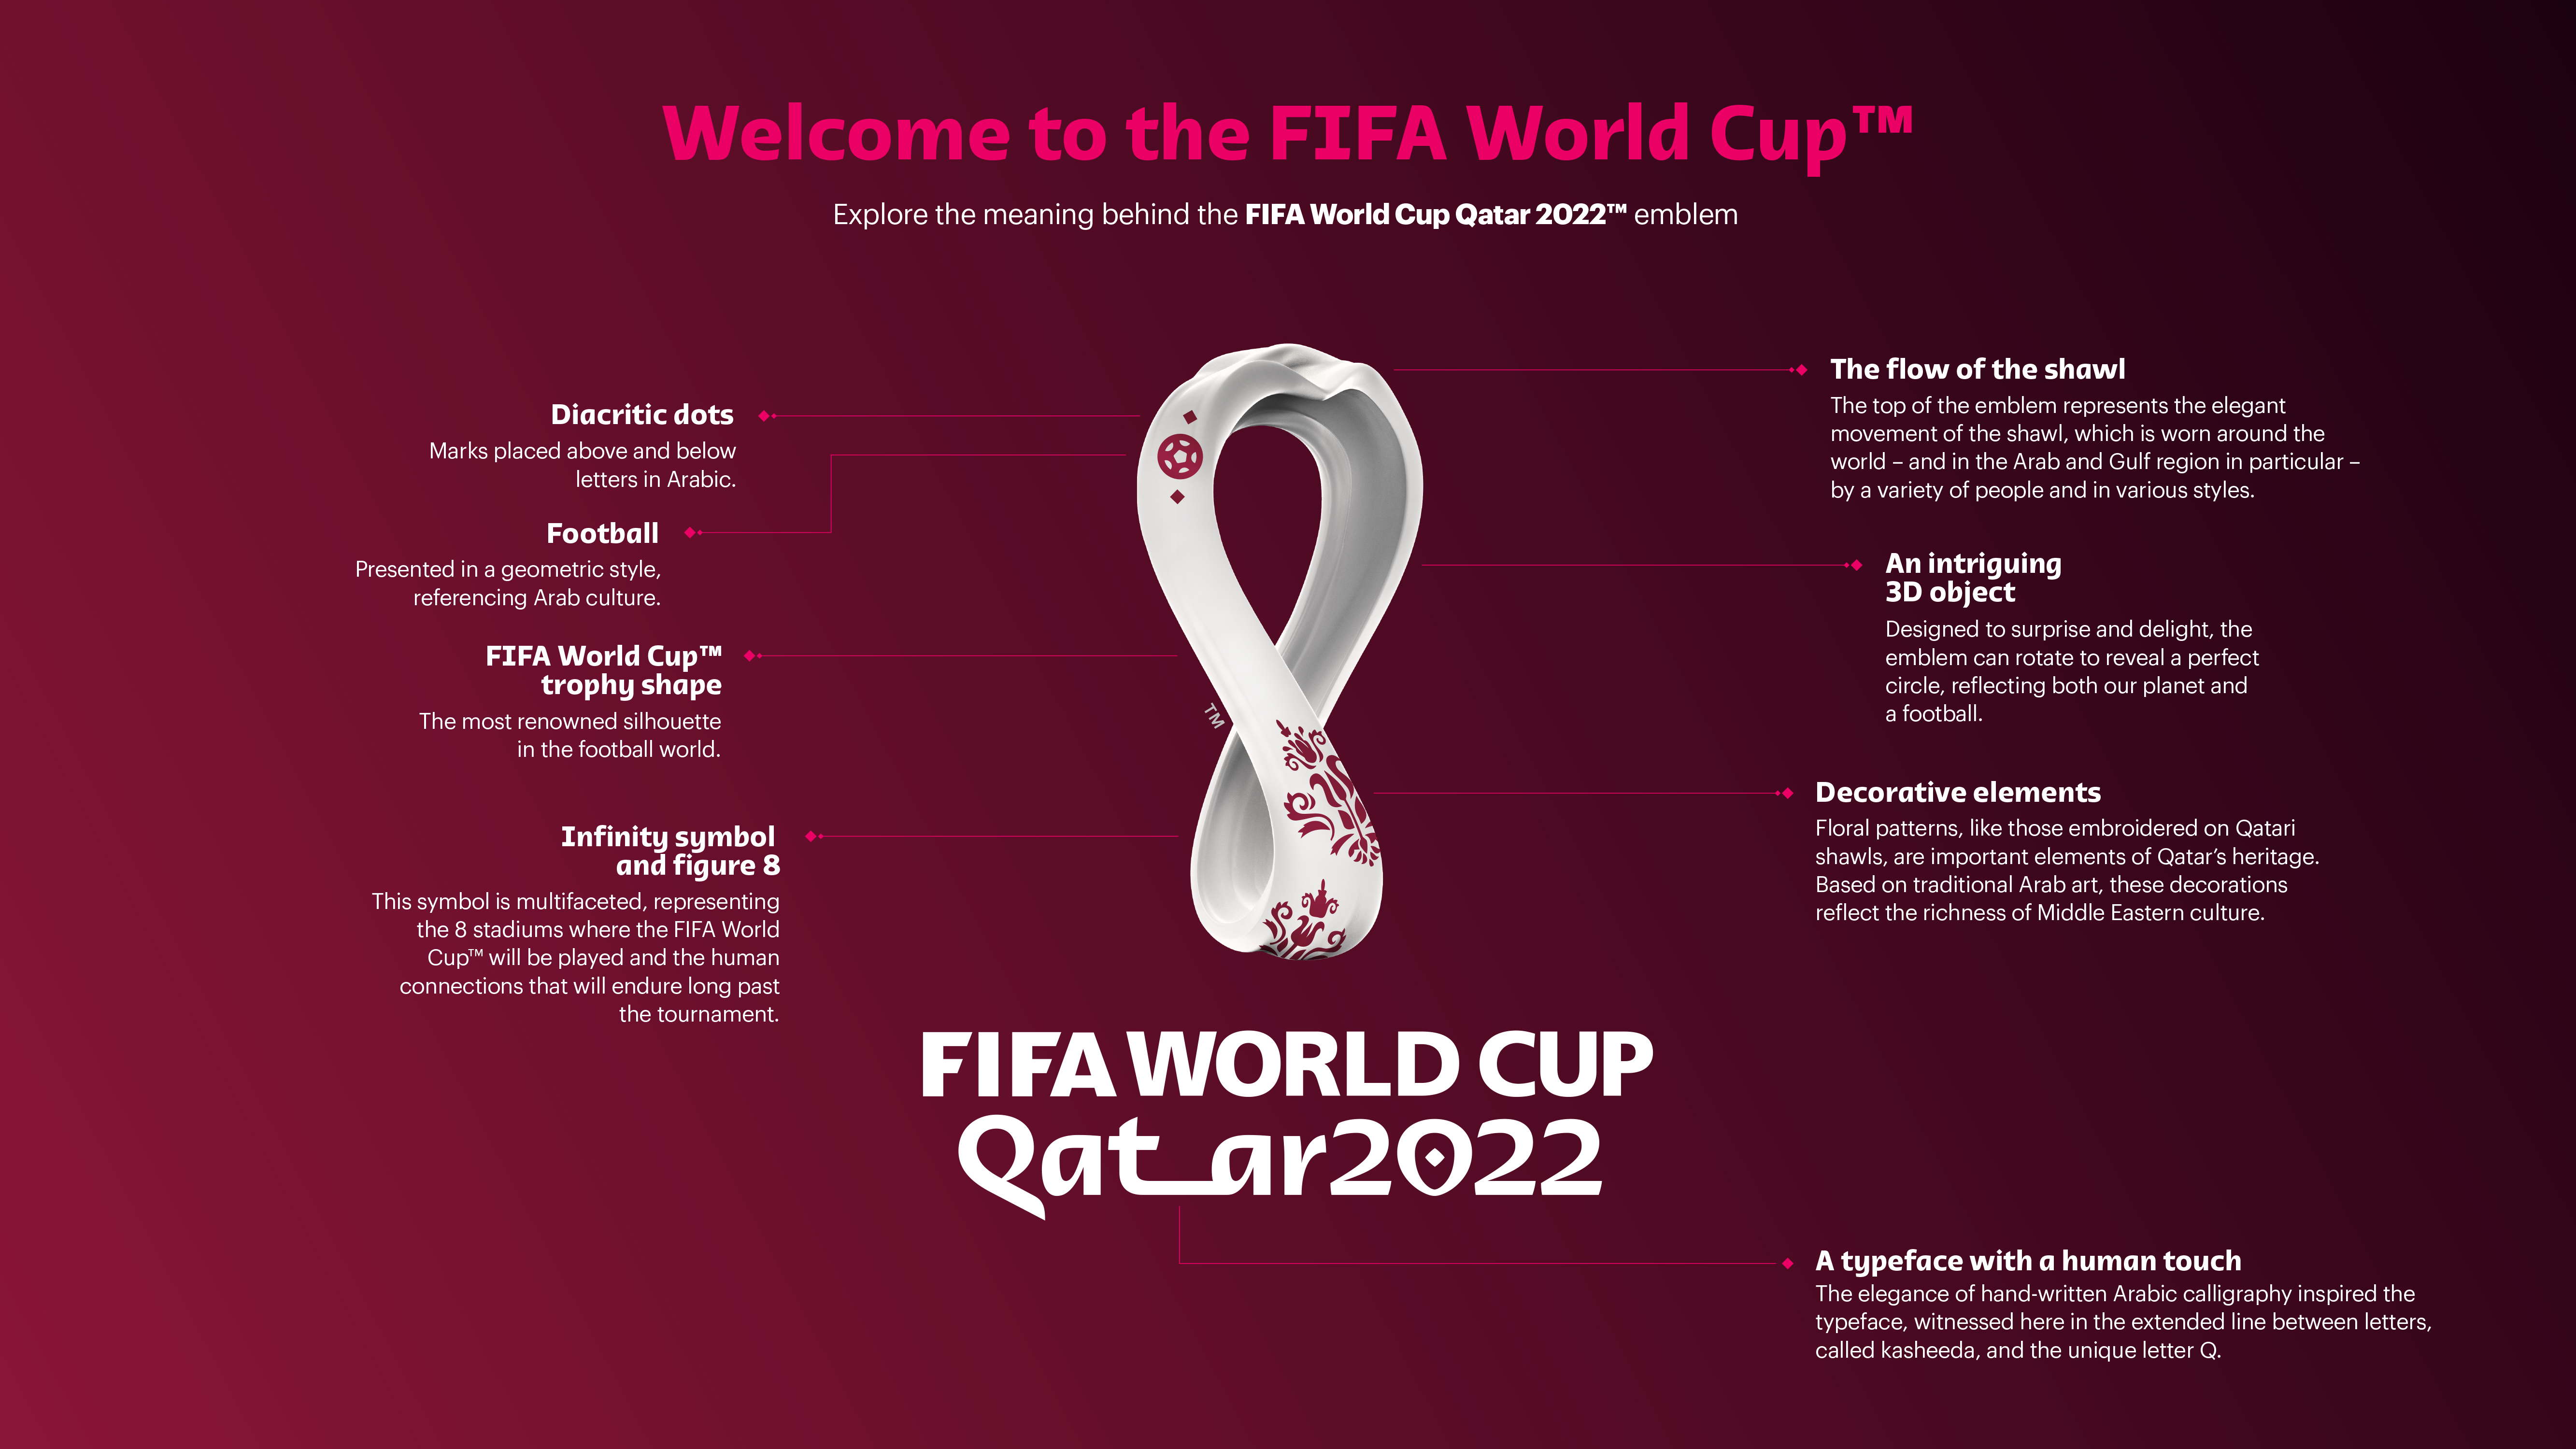 A detailed look at the FIFA World Cup 2022 official emblem